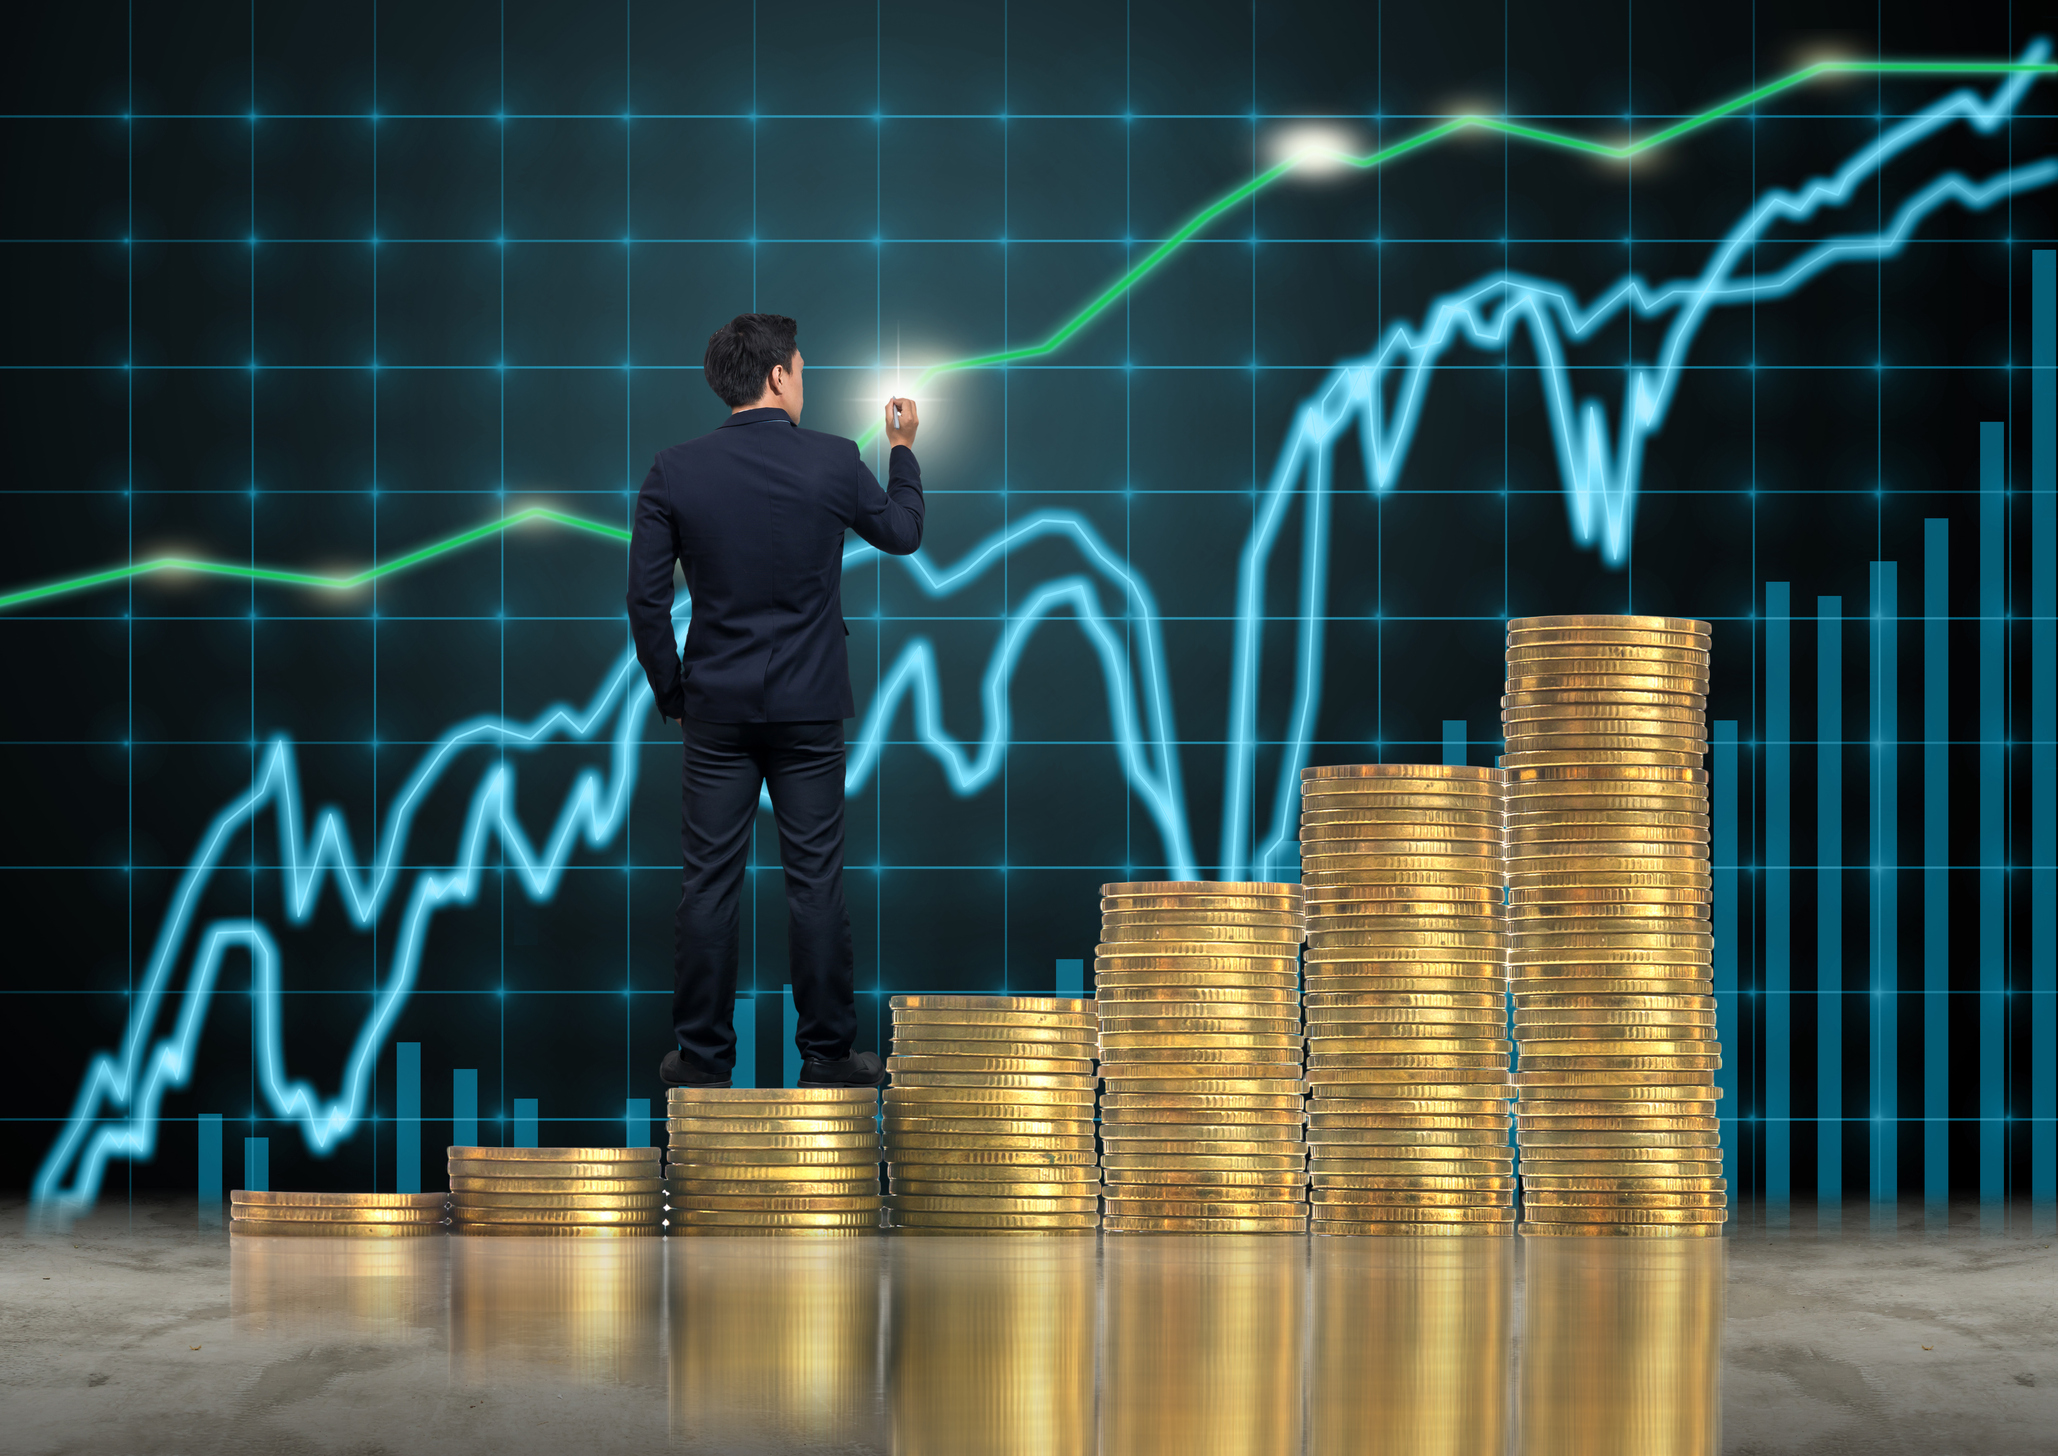 Businessman standing over the stack of gold coins and drawing the trading graph of Stock exchange market background, Business trading and education concept